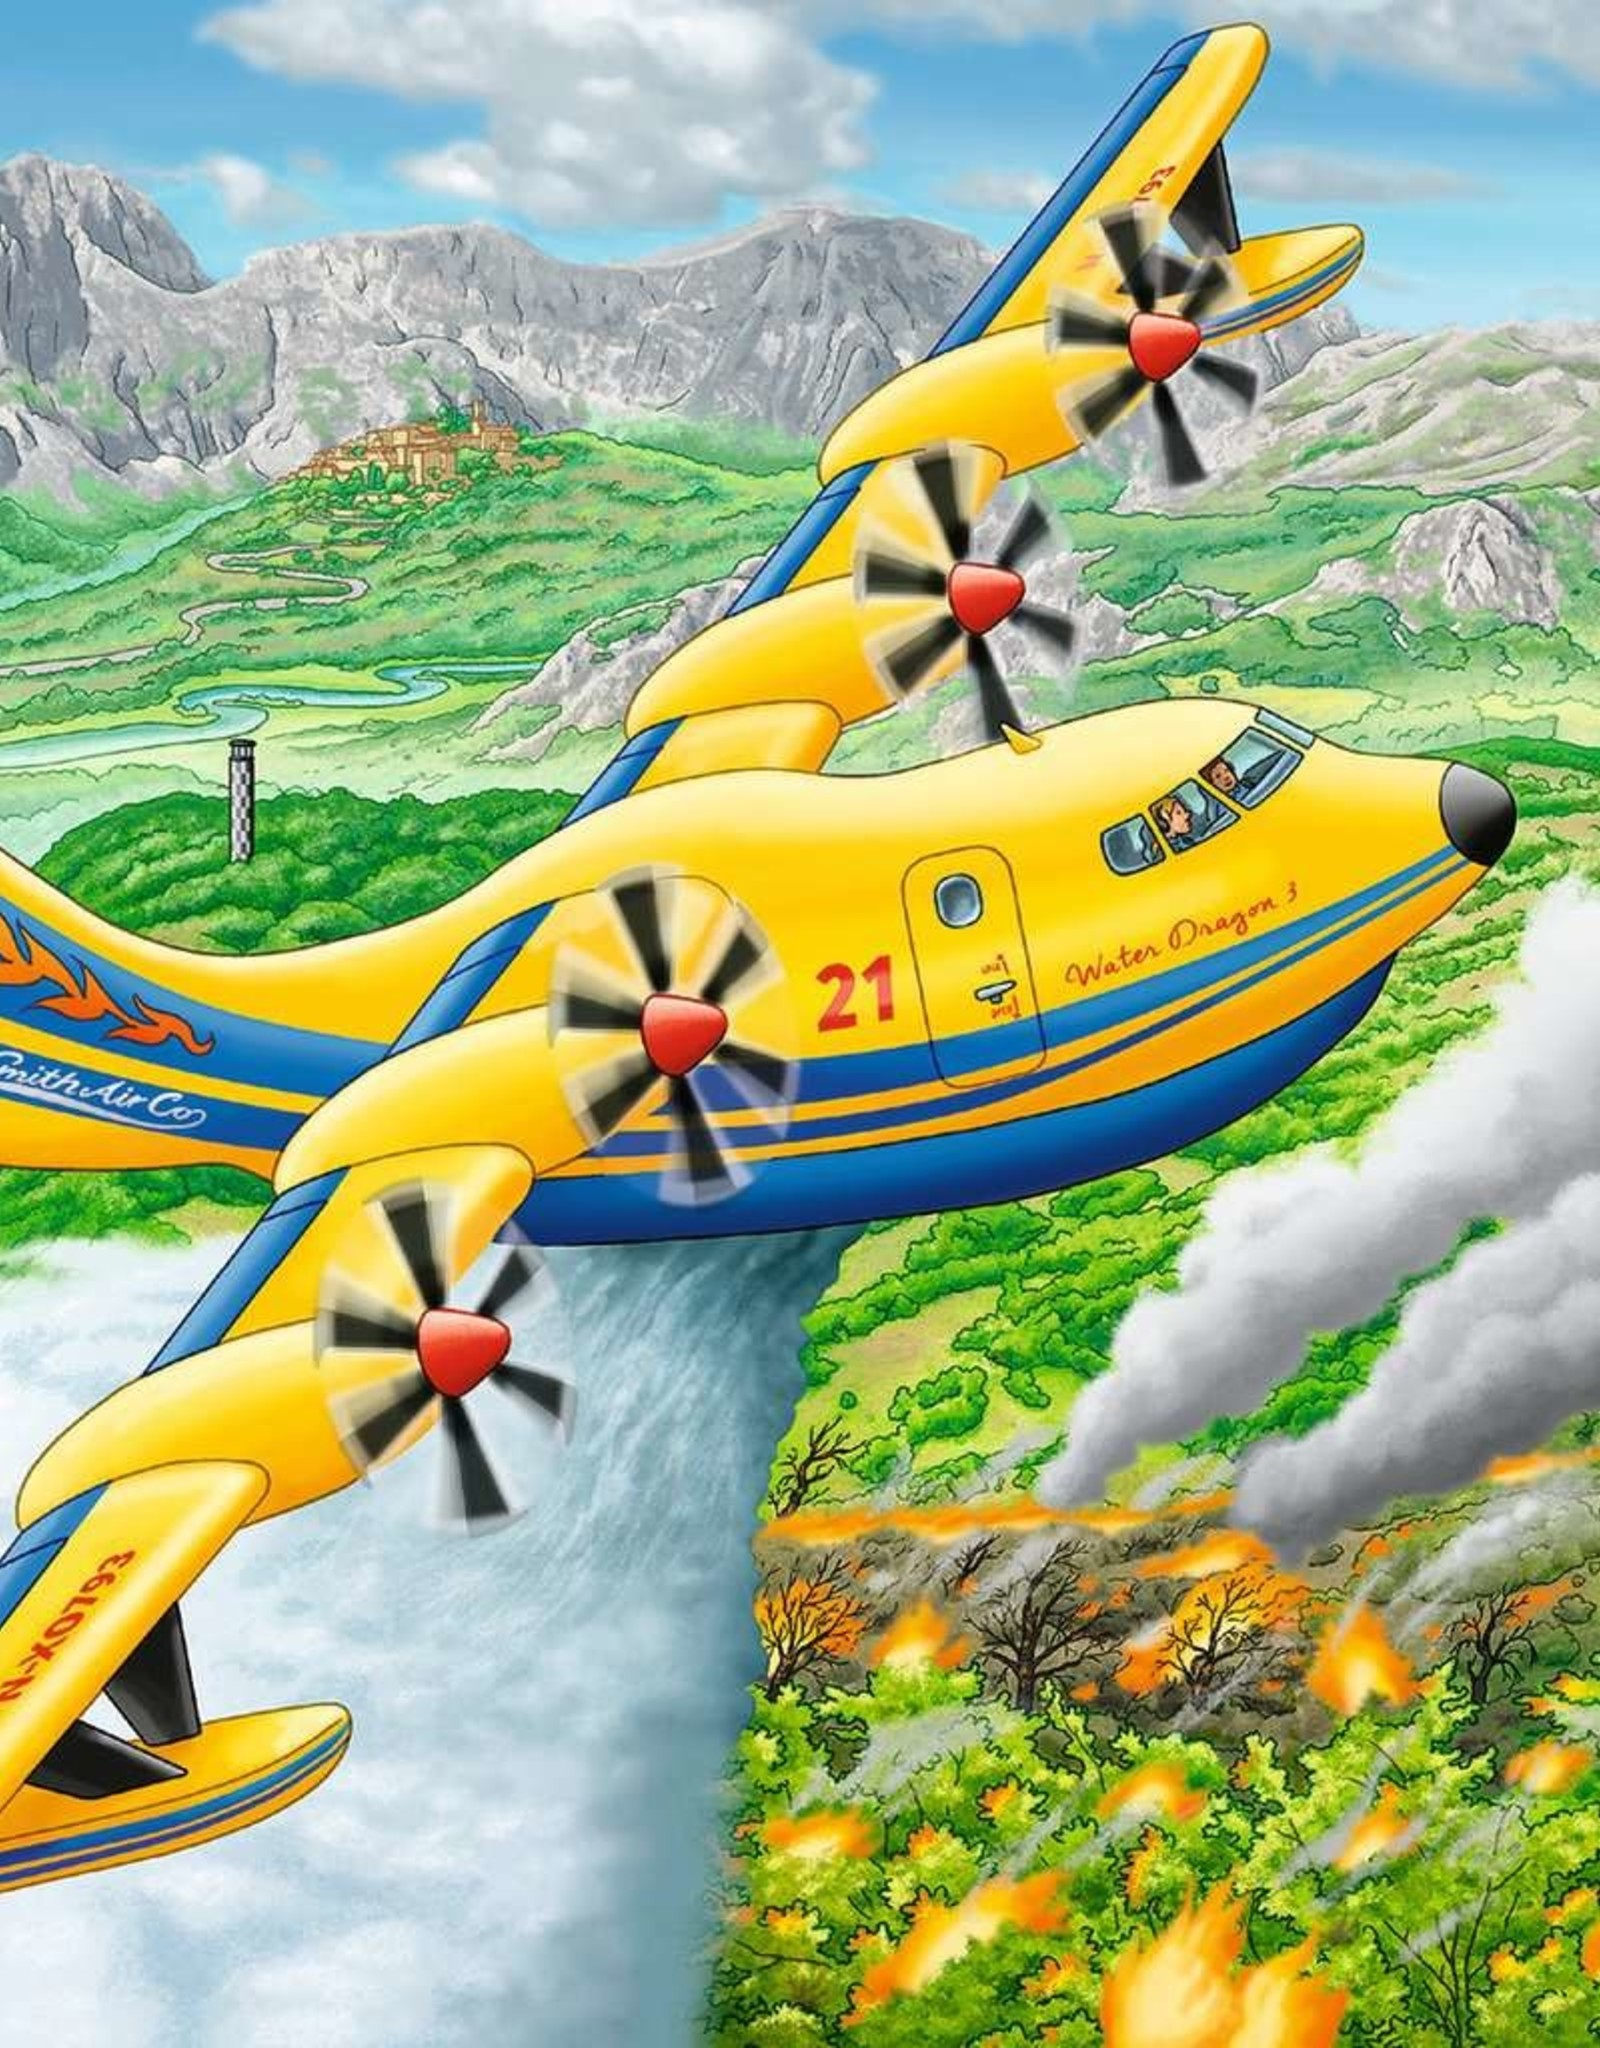 Ravensburger 49 Piece Puzzle: Above the Clouds